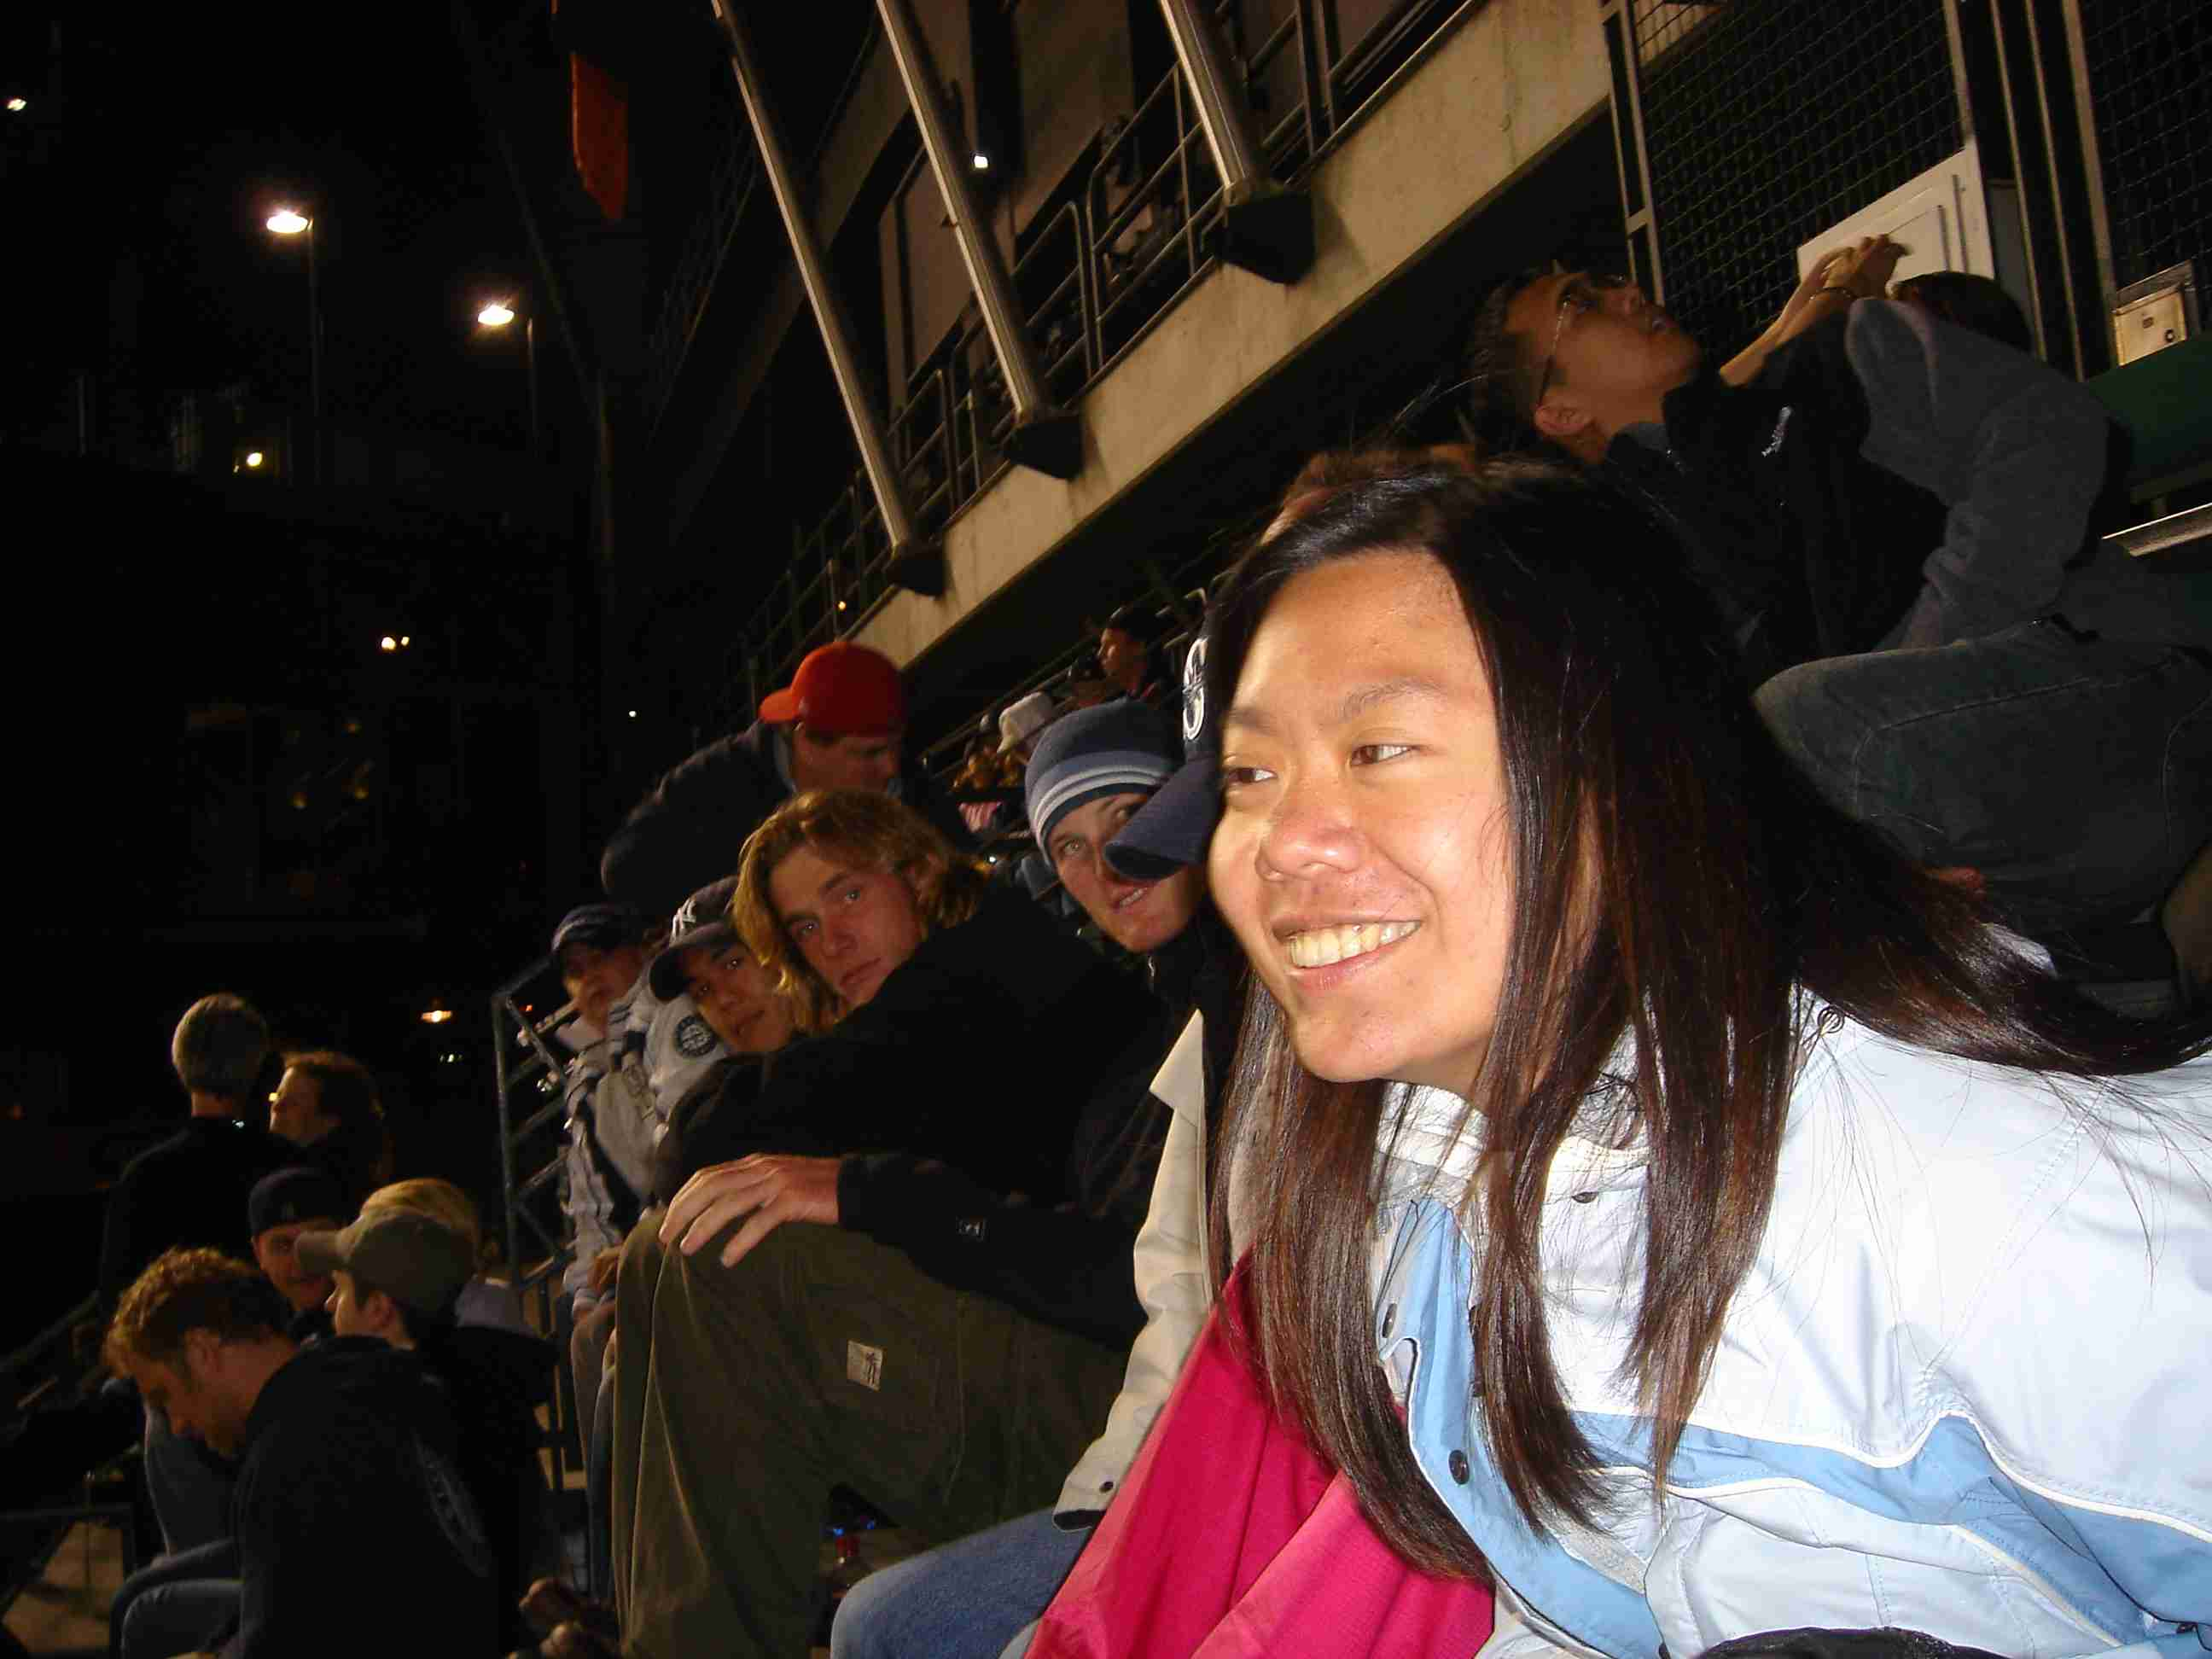 Tina at the ballgame